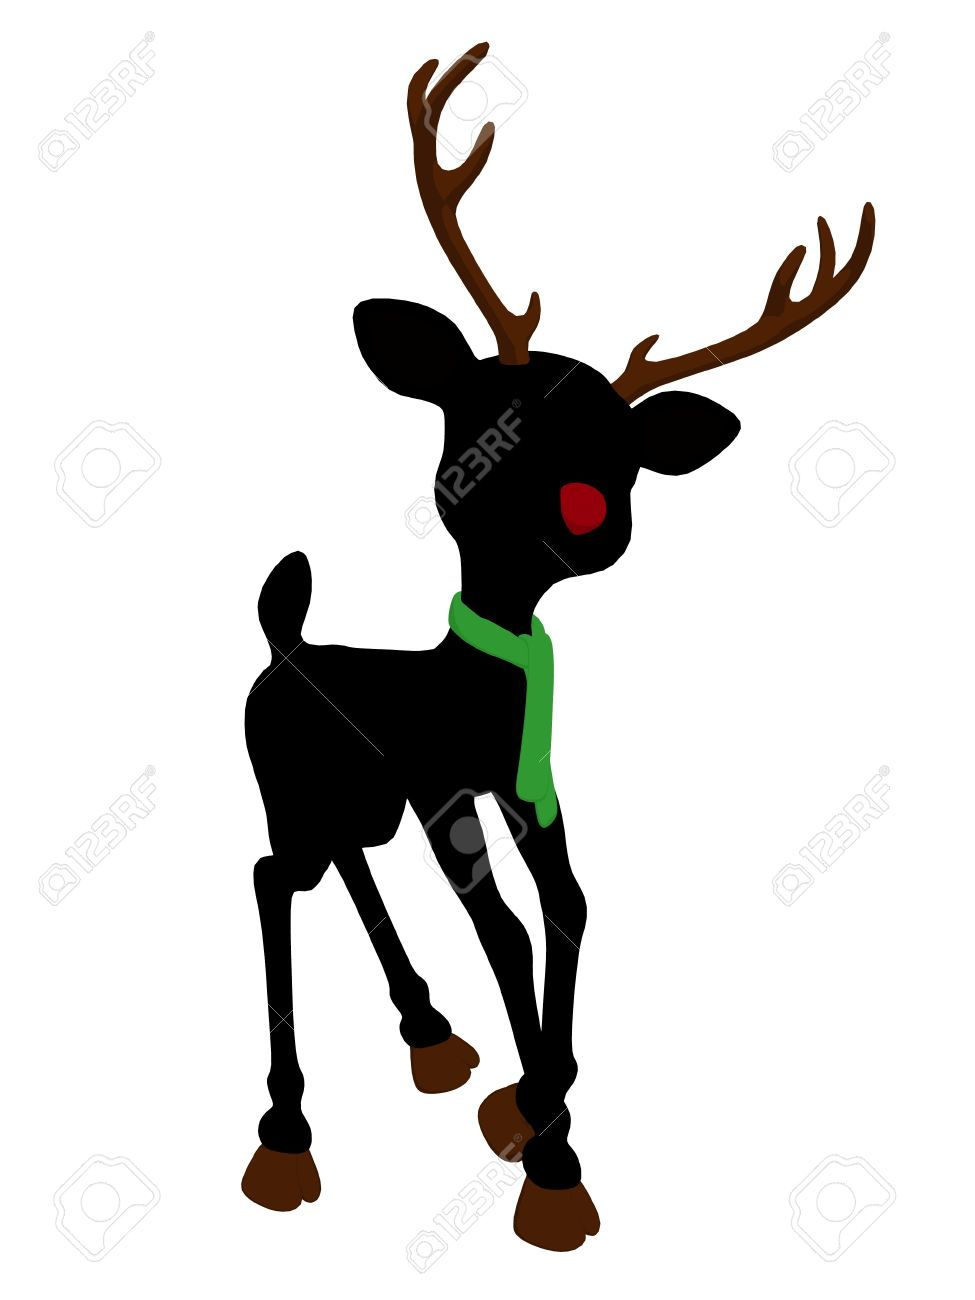 Soothing Head Silhouette Rudolph Clip Art Merry Amp Happy New Deer Head Silhouette Clipart Free Download Deer Head Cartoon Reindeer Head Silhouette Reindeer Head Silhouette Clipart houzz 01 Reindeer Head Silhouette